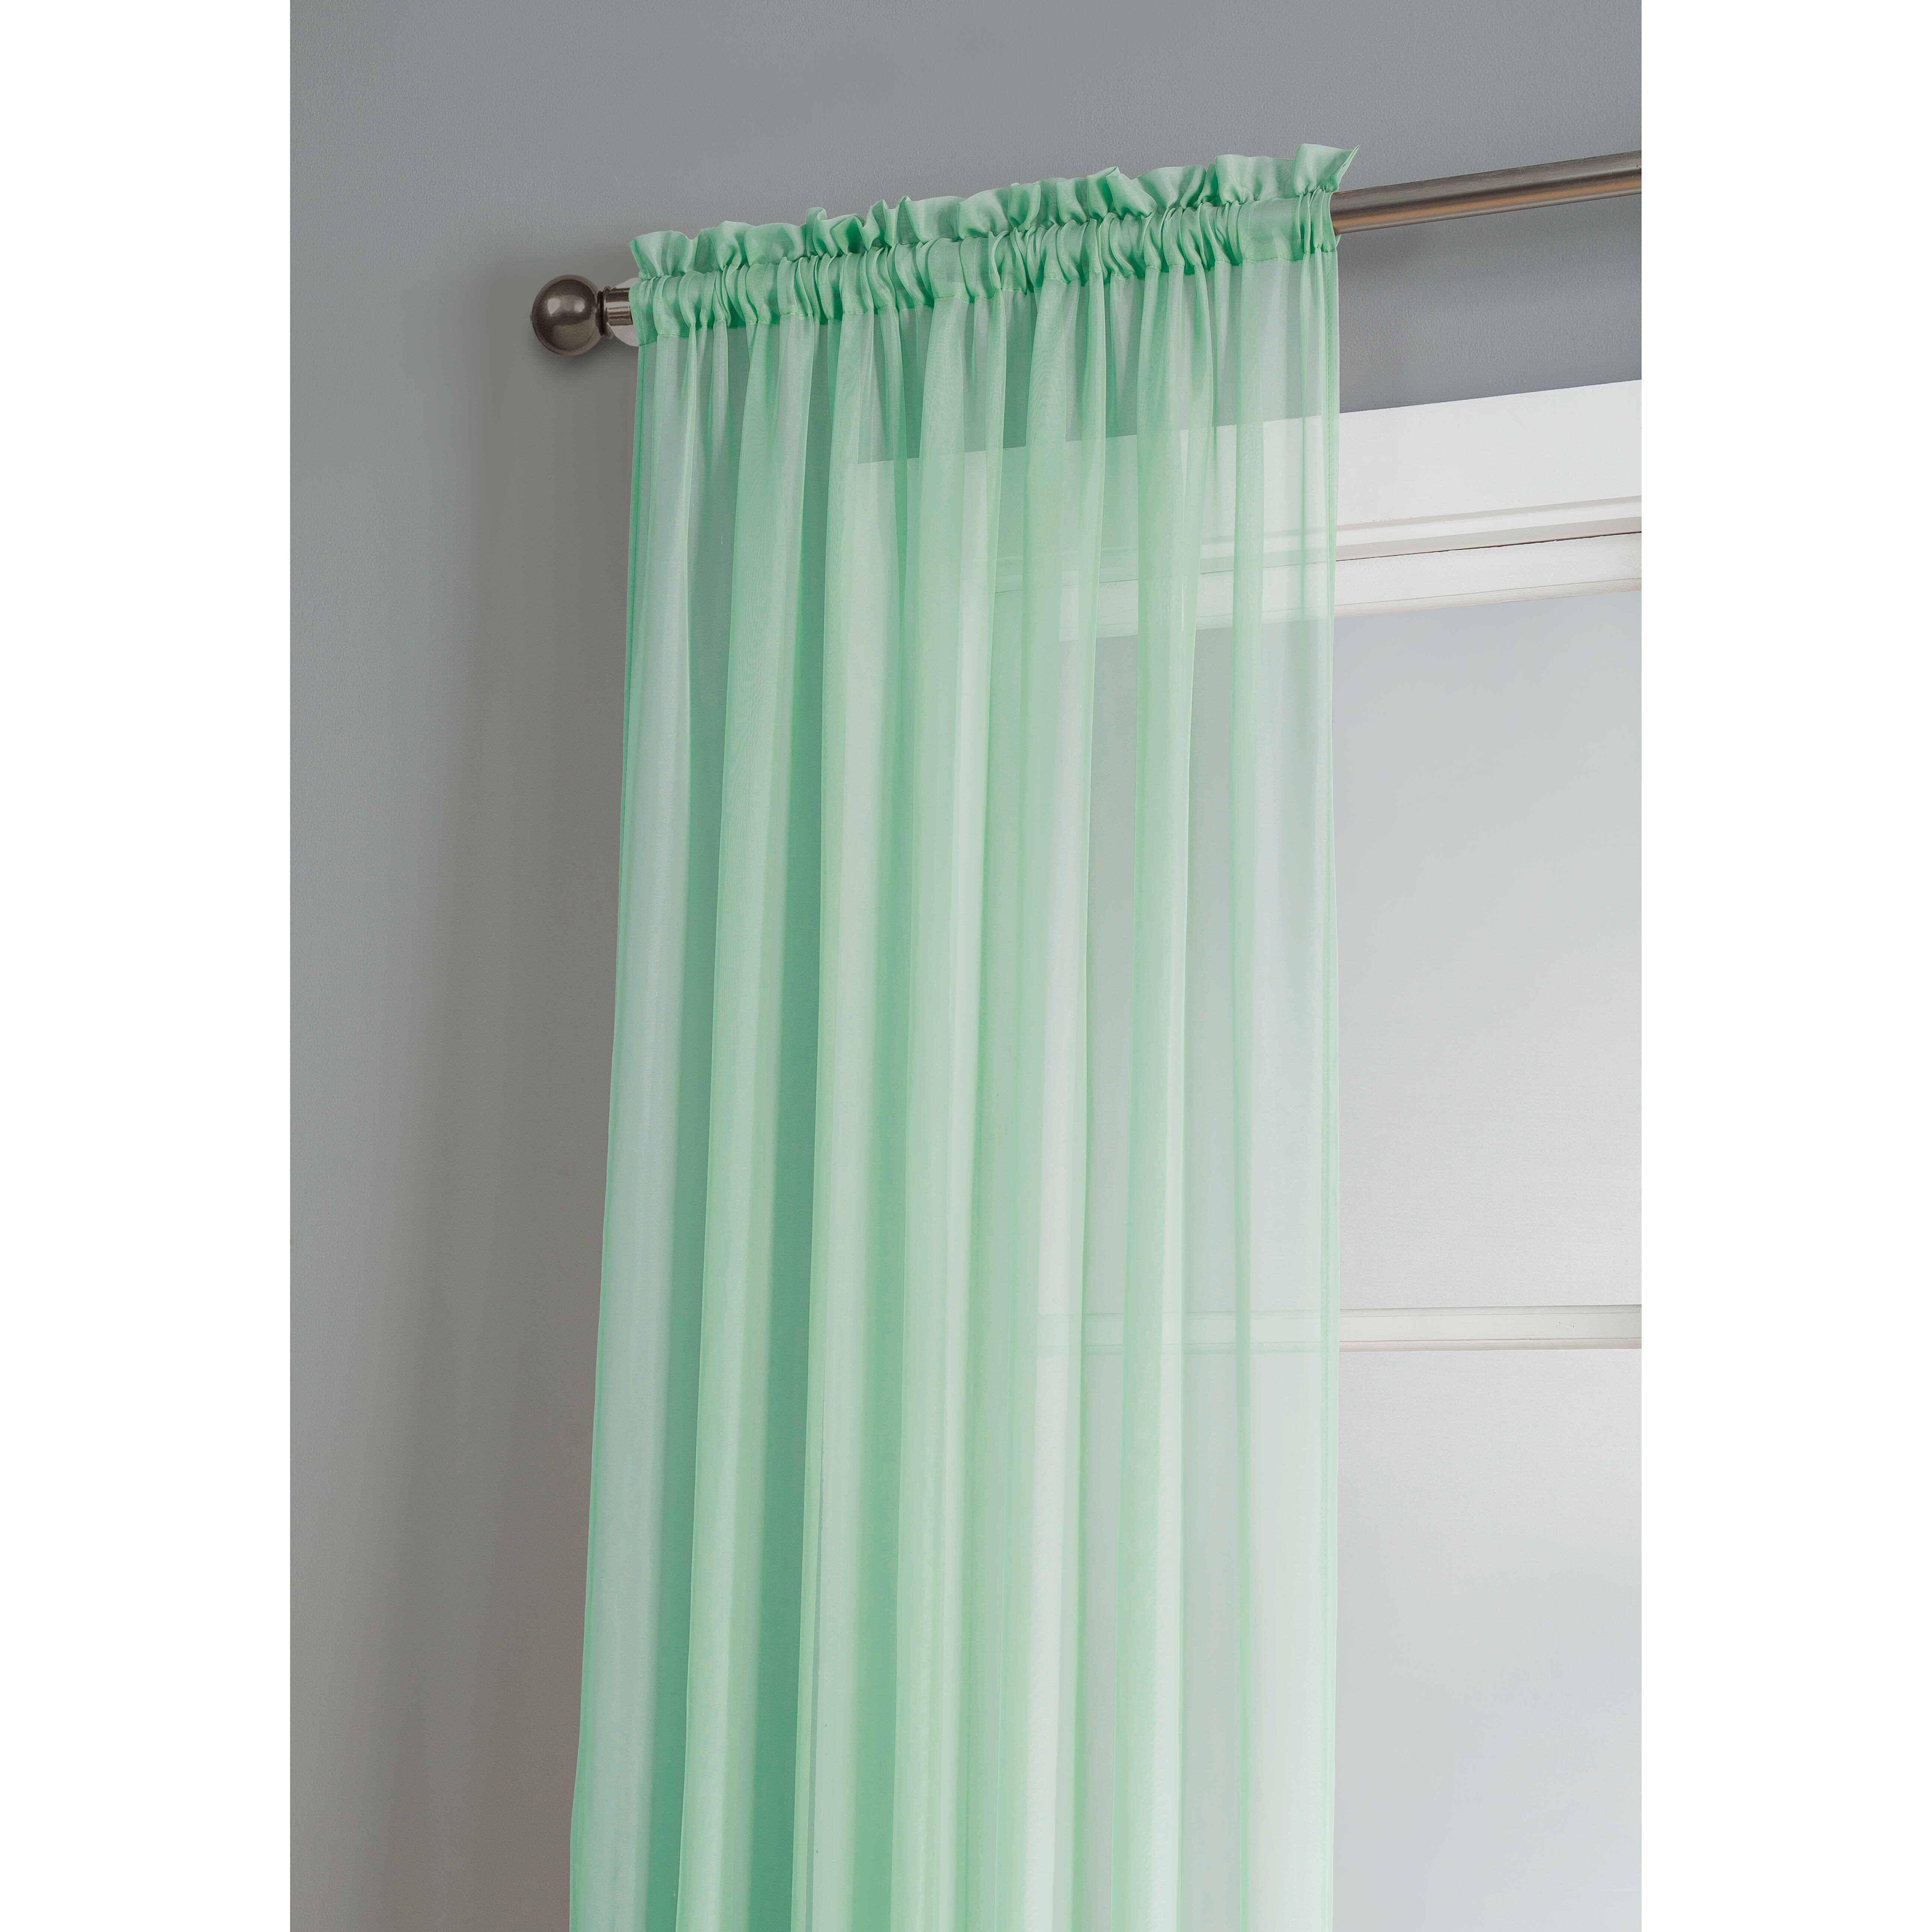 Beaded door curtains argos - Teal Sheer Curtains Panels Window Elements Logan Sheer Voile Extra Wide Rod Pocket Single Curtain